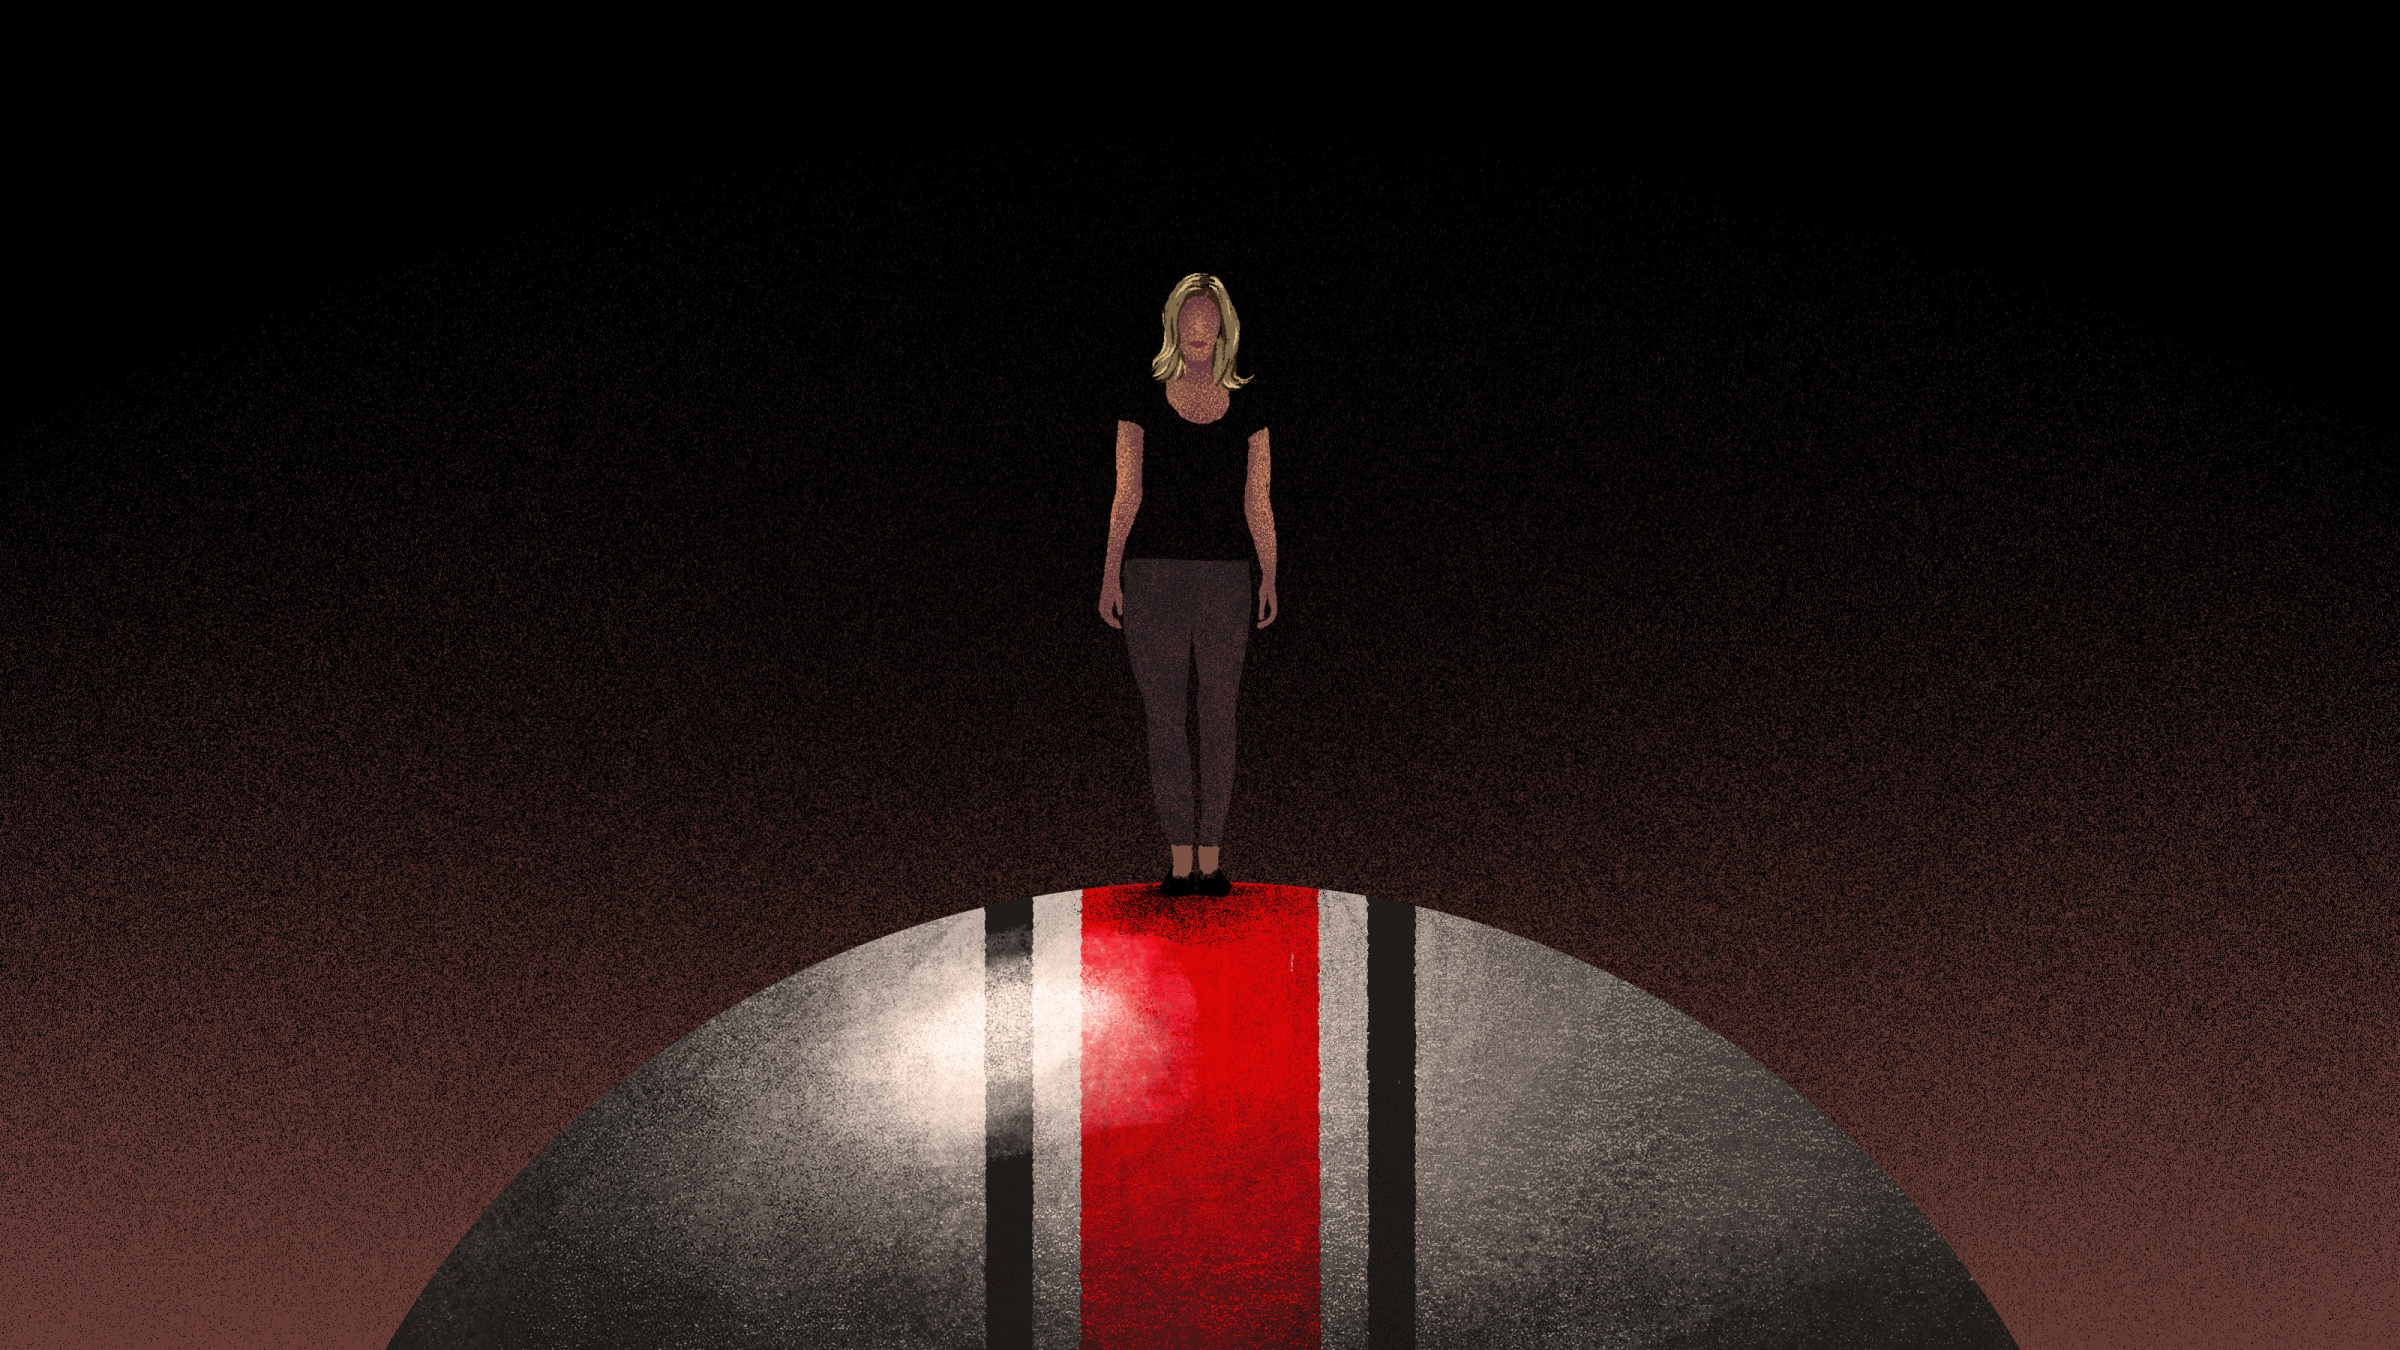 An image of a woman standing atop an Ohio State football helmet. She is very small, while the helmet fills the frame. Behind her is darkness.